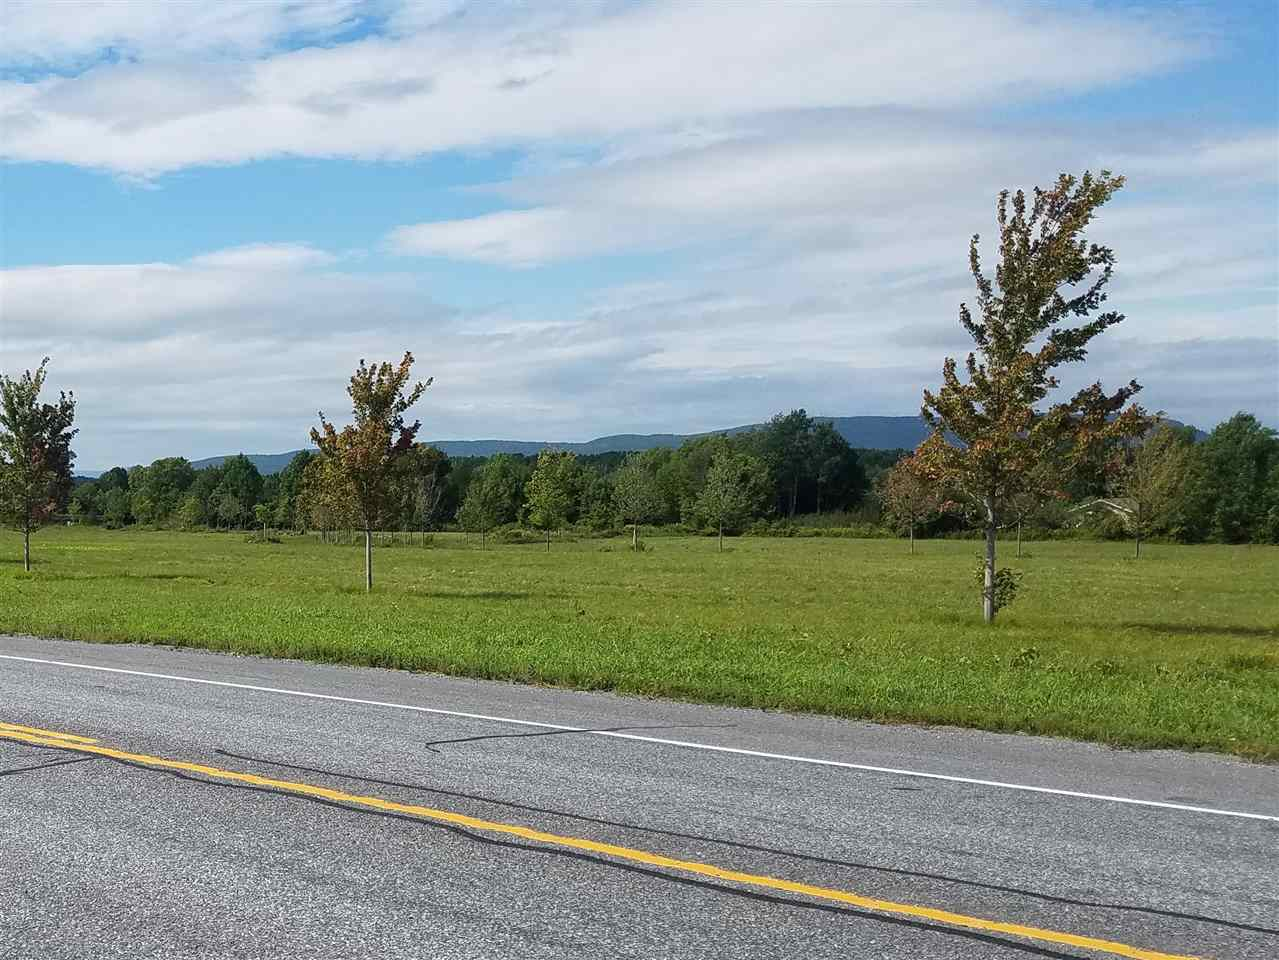 Ready to build commercial corner lot with great exposure on Route 7! Lot #2 has 2.3 acres of area and has approximately 250 feet of road frontage on Route 7 and another 250 feet on Campground Road. Close to entrance to the subdivision and is highly visible from Route 7 traffic. Gently sloping lot is ready for your business. Electric and septic have been piped to the lots and will be ready for hook-up. 3 Phase Power Available! Don't miss the opportunity to locate your business in this 5 unit subdivision in the heart of Addison County.